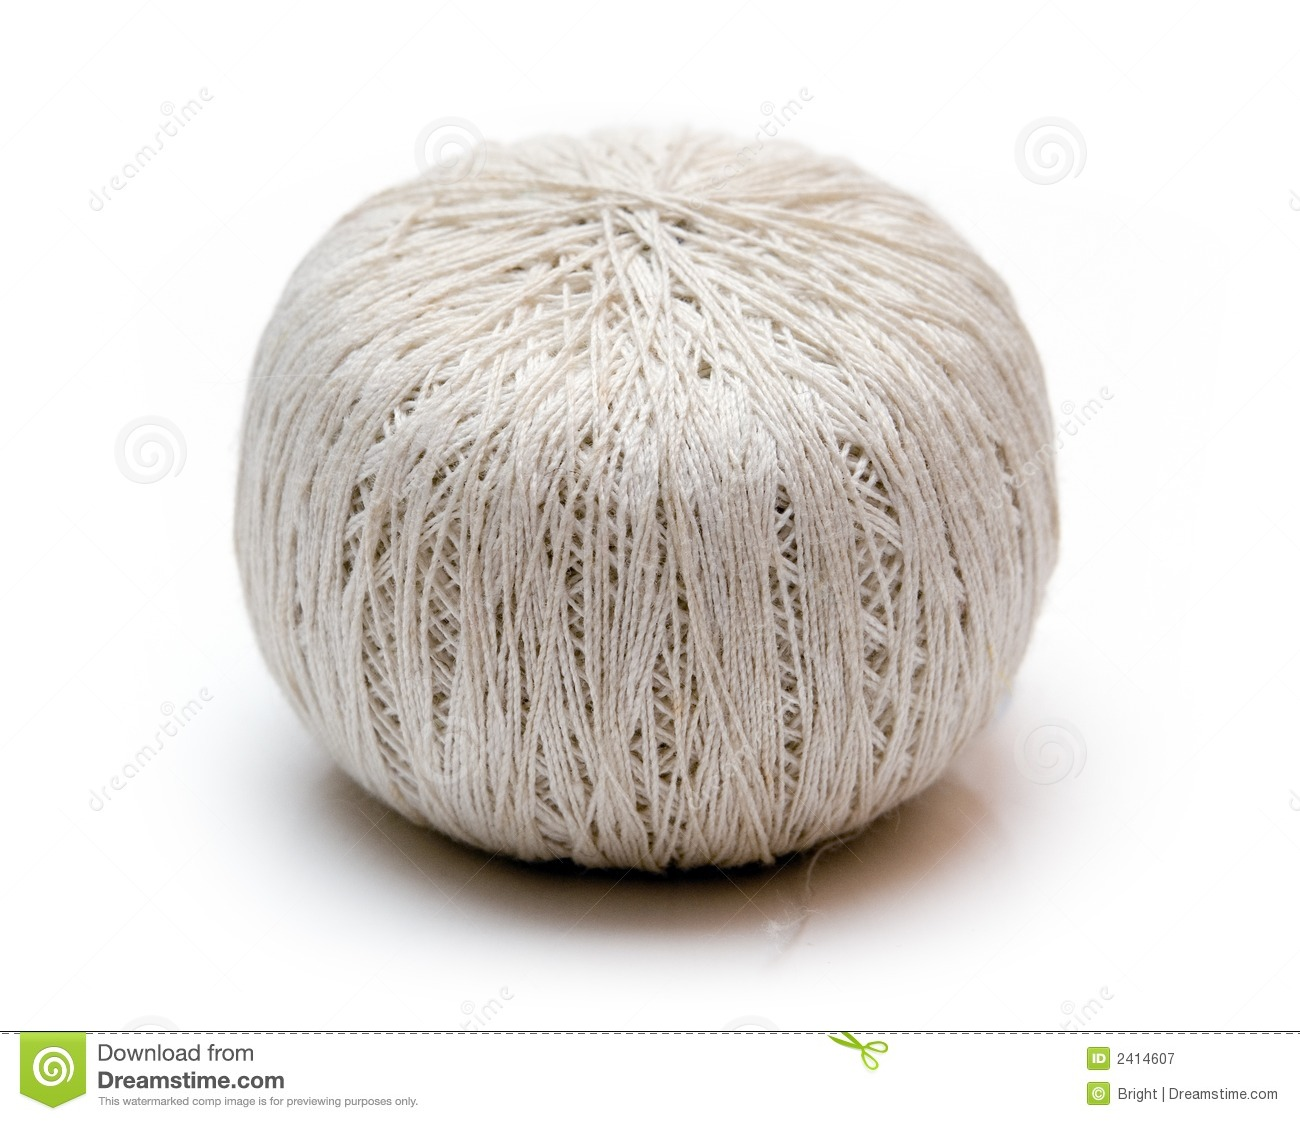 Knitting Patterns For Thin Yarn : Thin yarn stock image. Image of crochet, ball, knitting ...